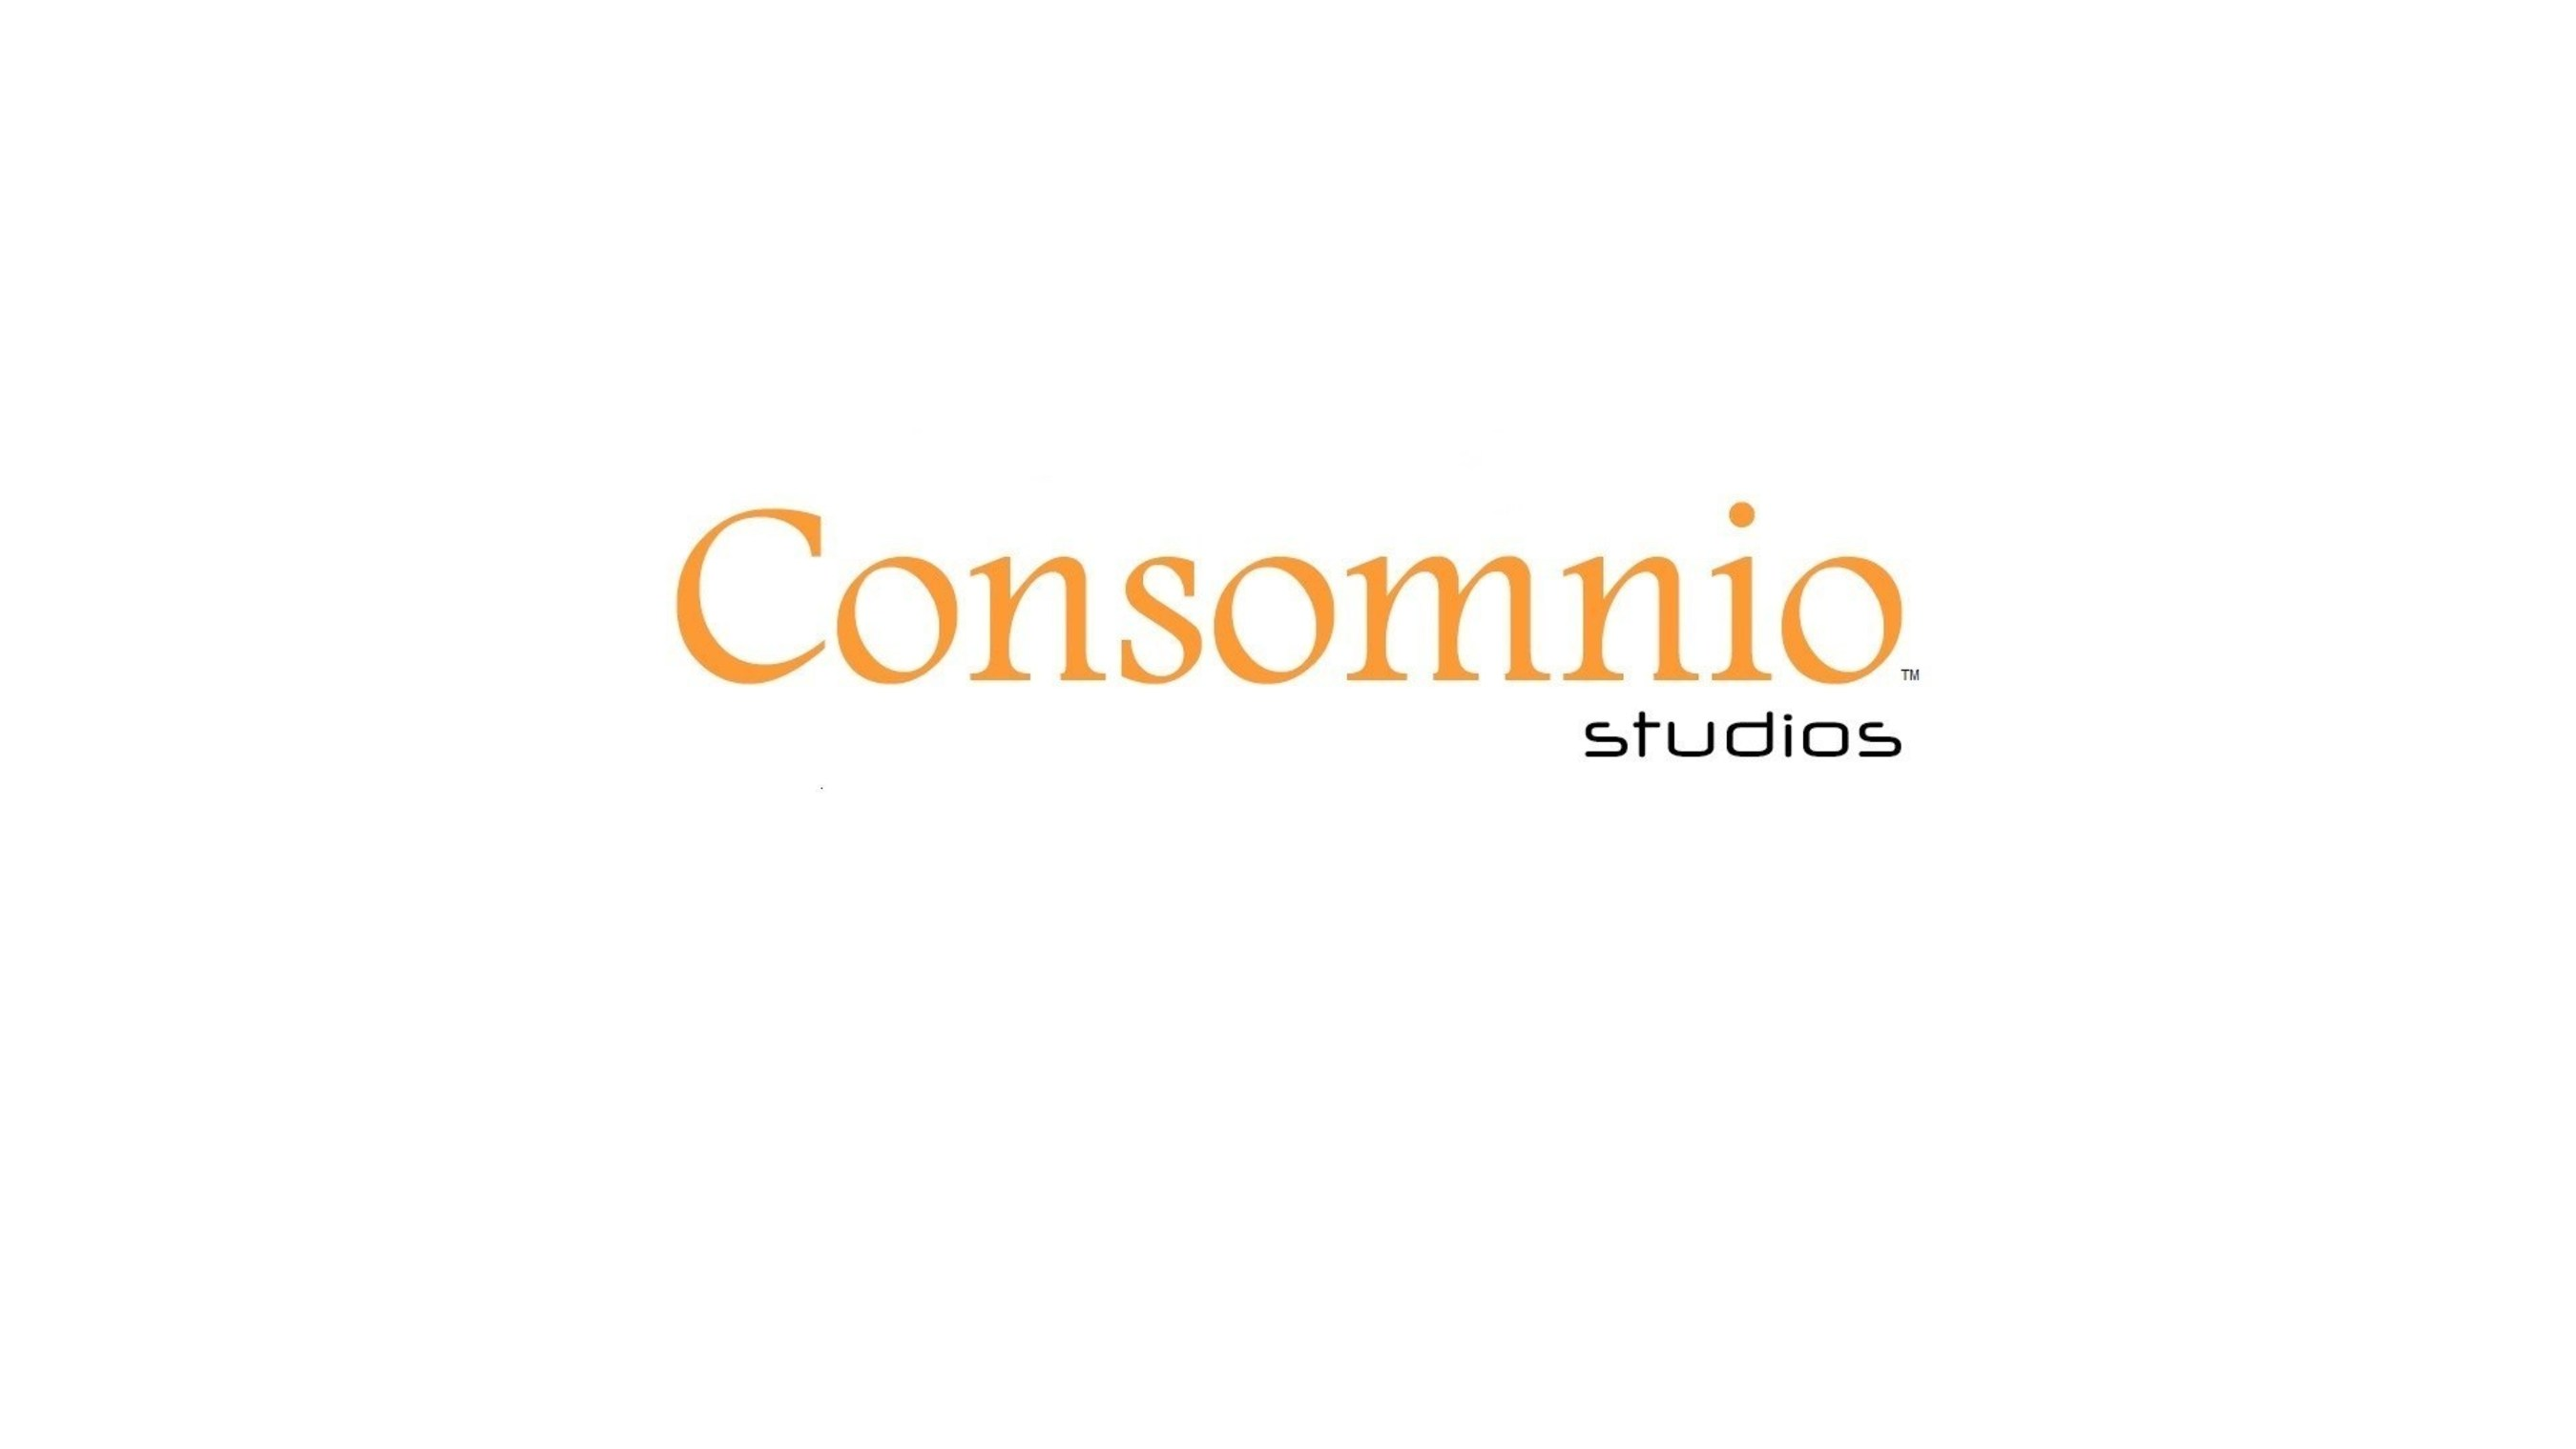 Consomnio Studios - Family Friendly 3D Animation Film Studio